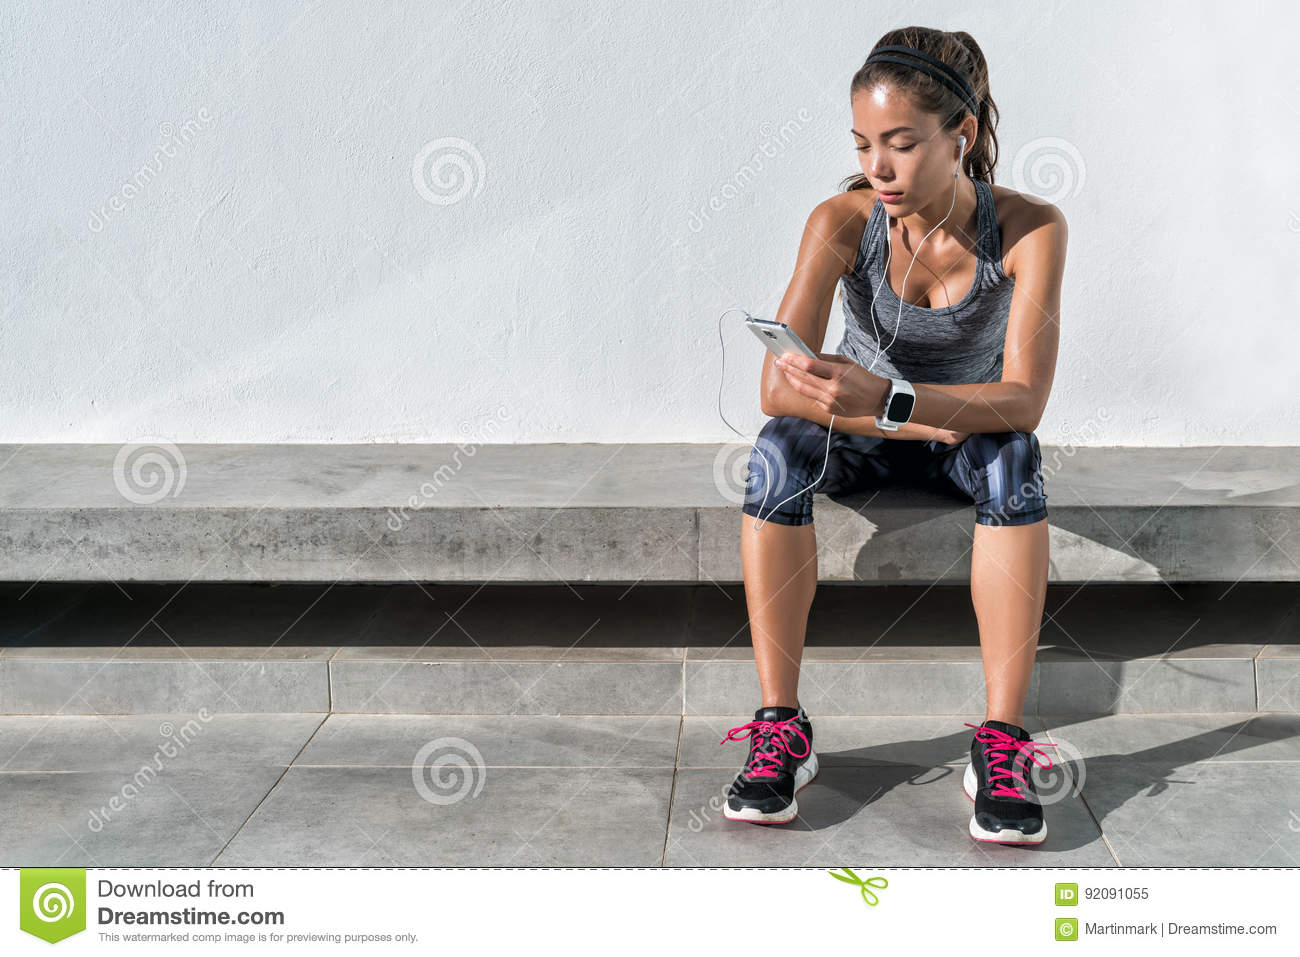 Fitness runner girl using music mobile phone app